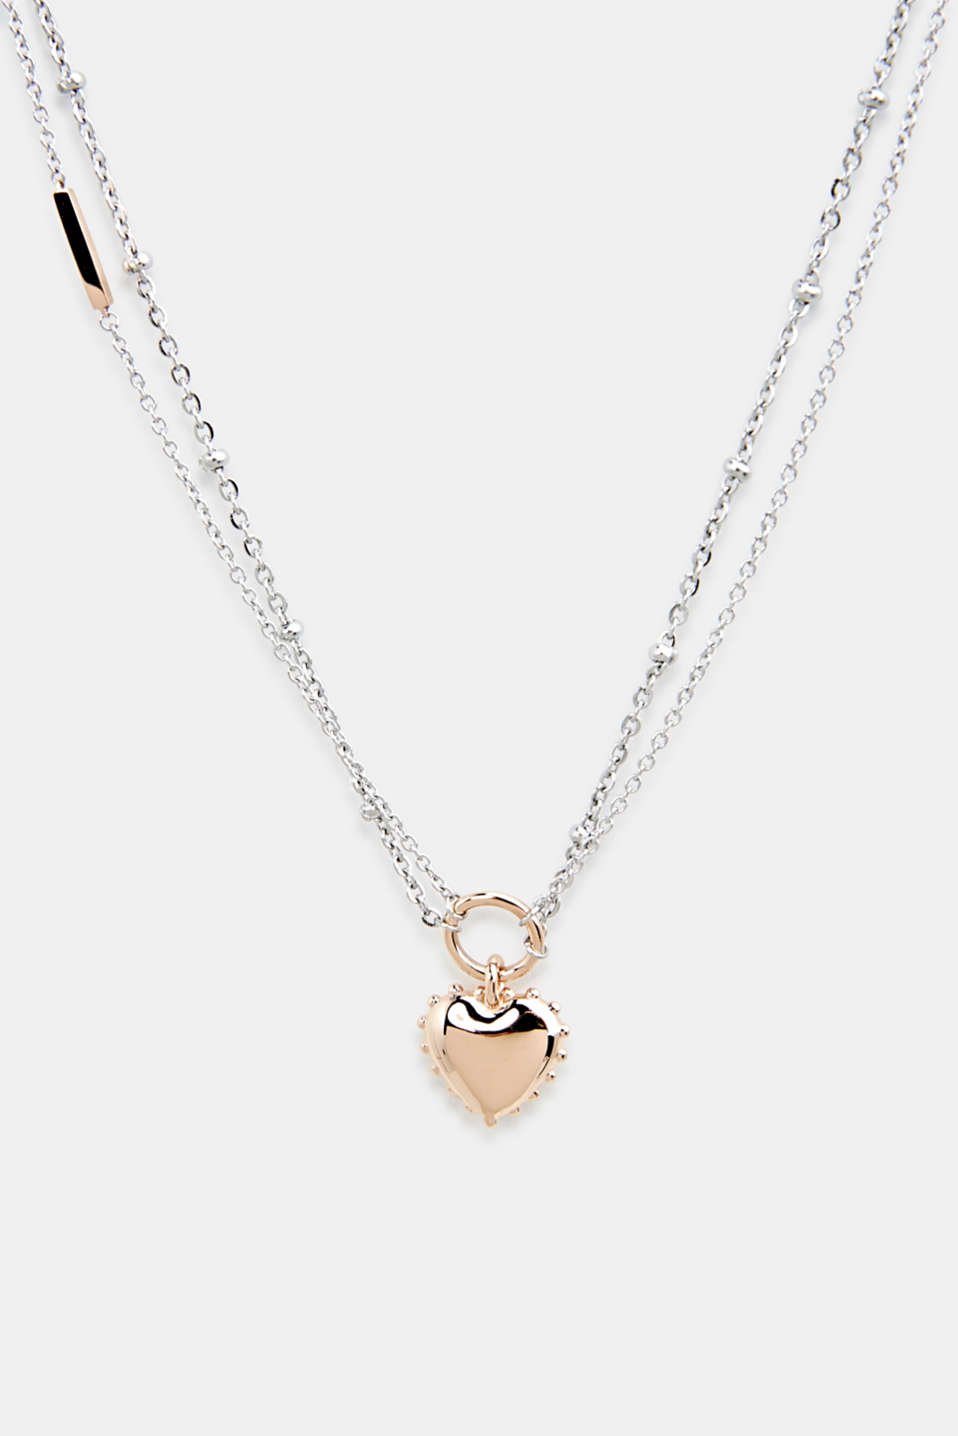 Necklace with heart pendant, stainless steel, LCROSEGOLD BICOL, detail image number 0